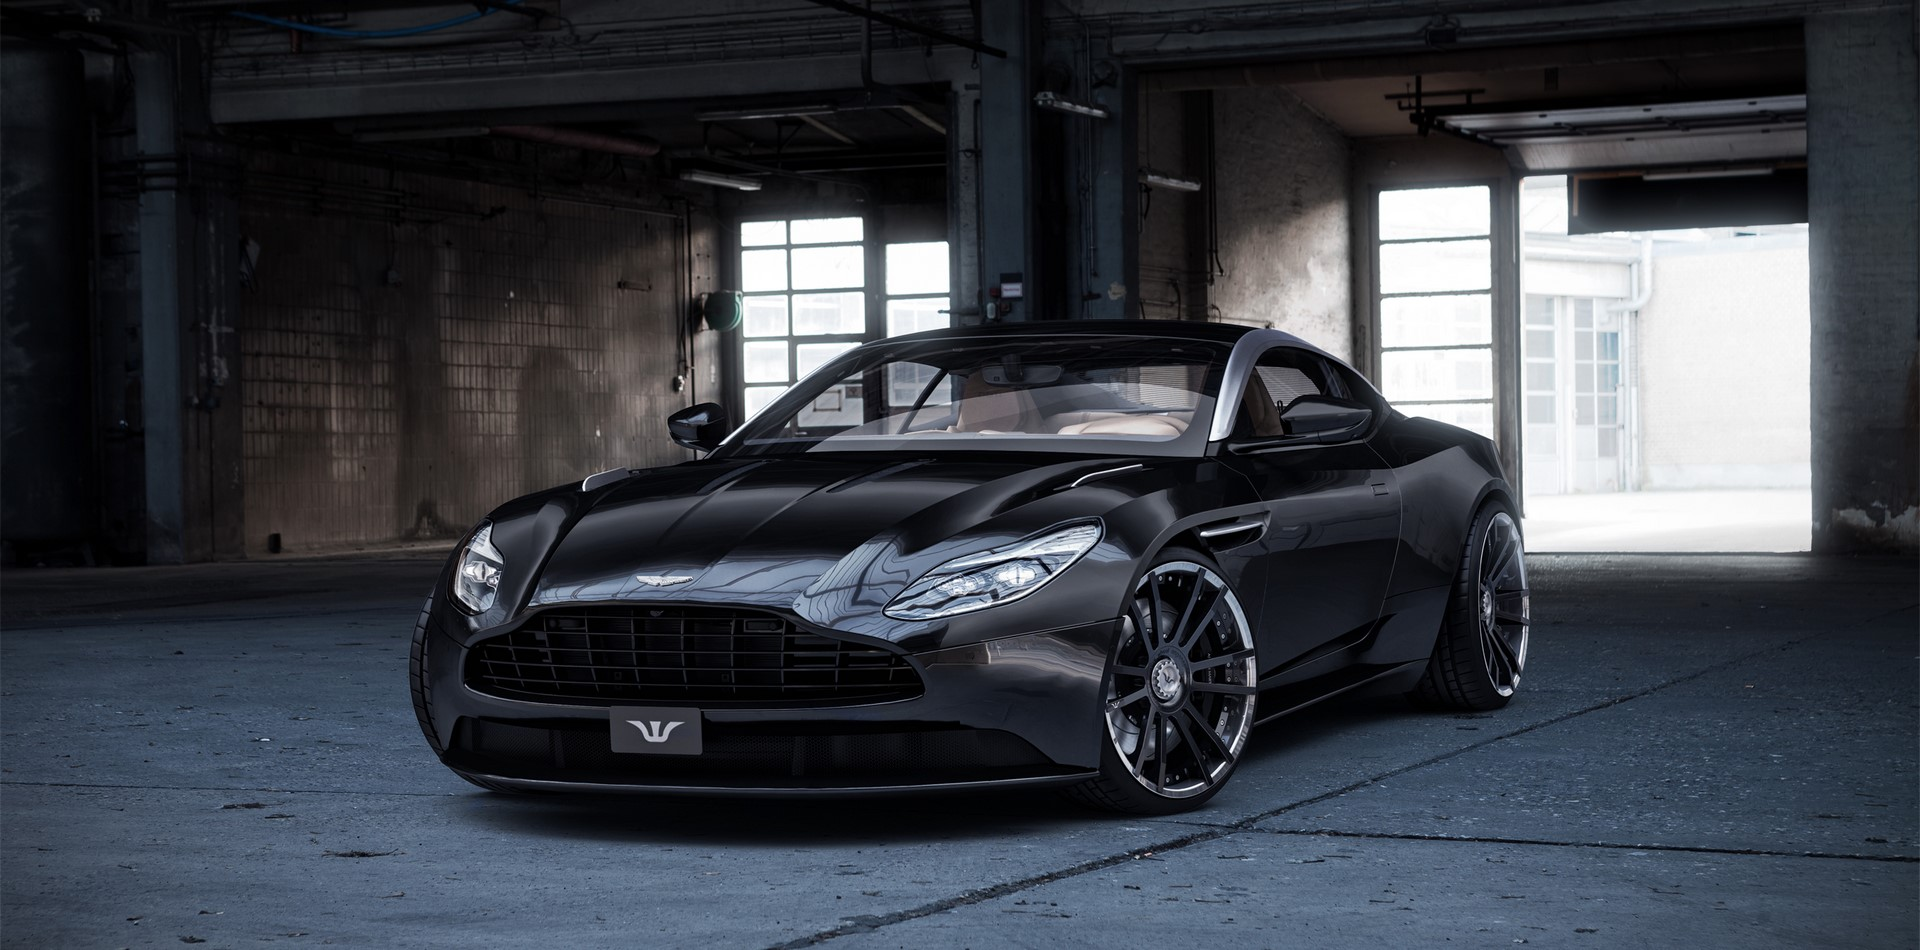 Aston Martin DB11 by Wheelsandmore (1)